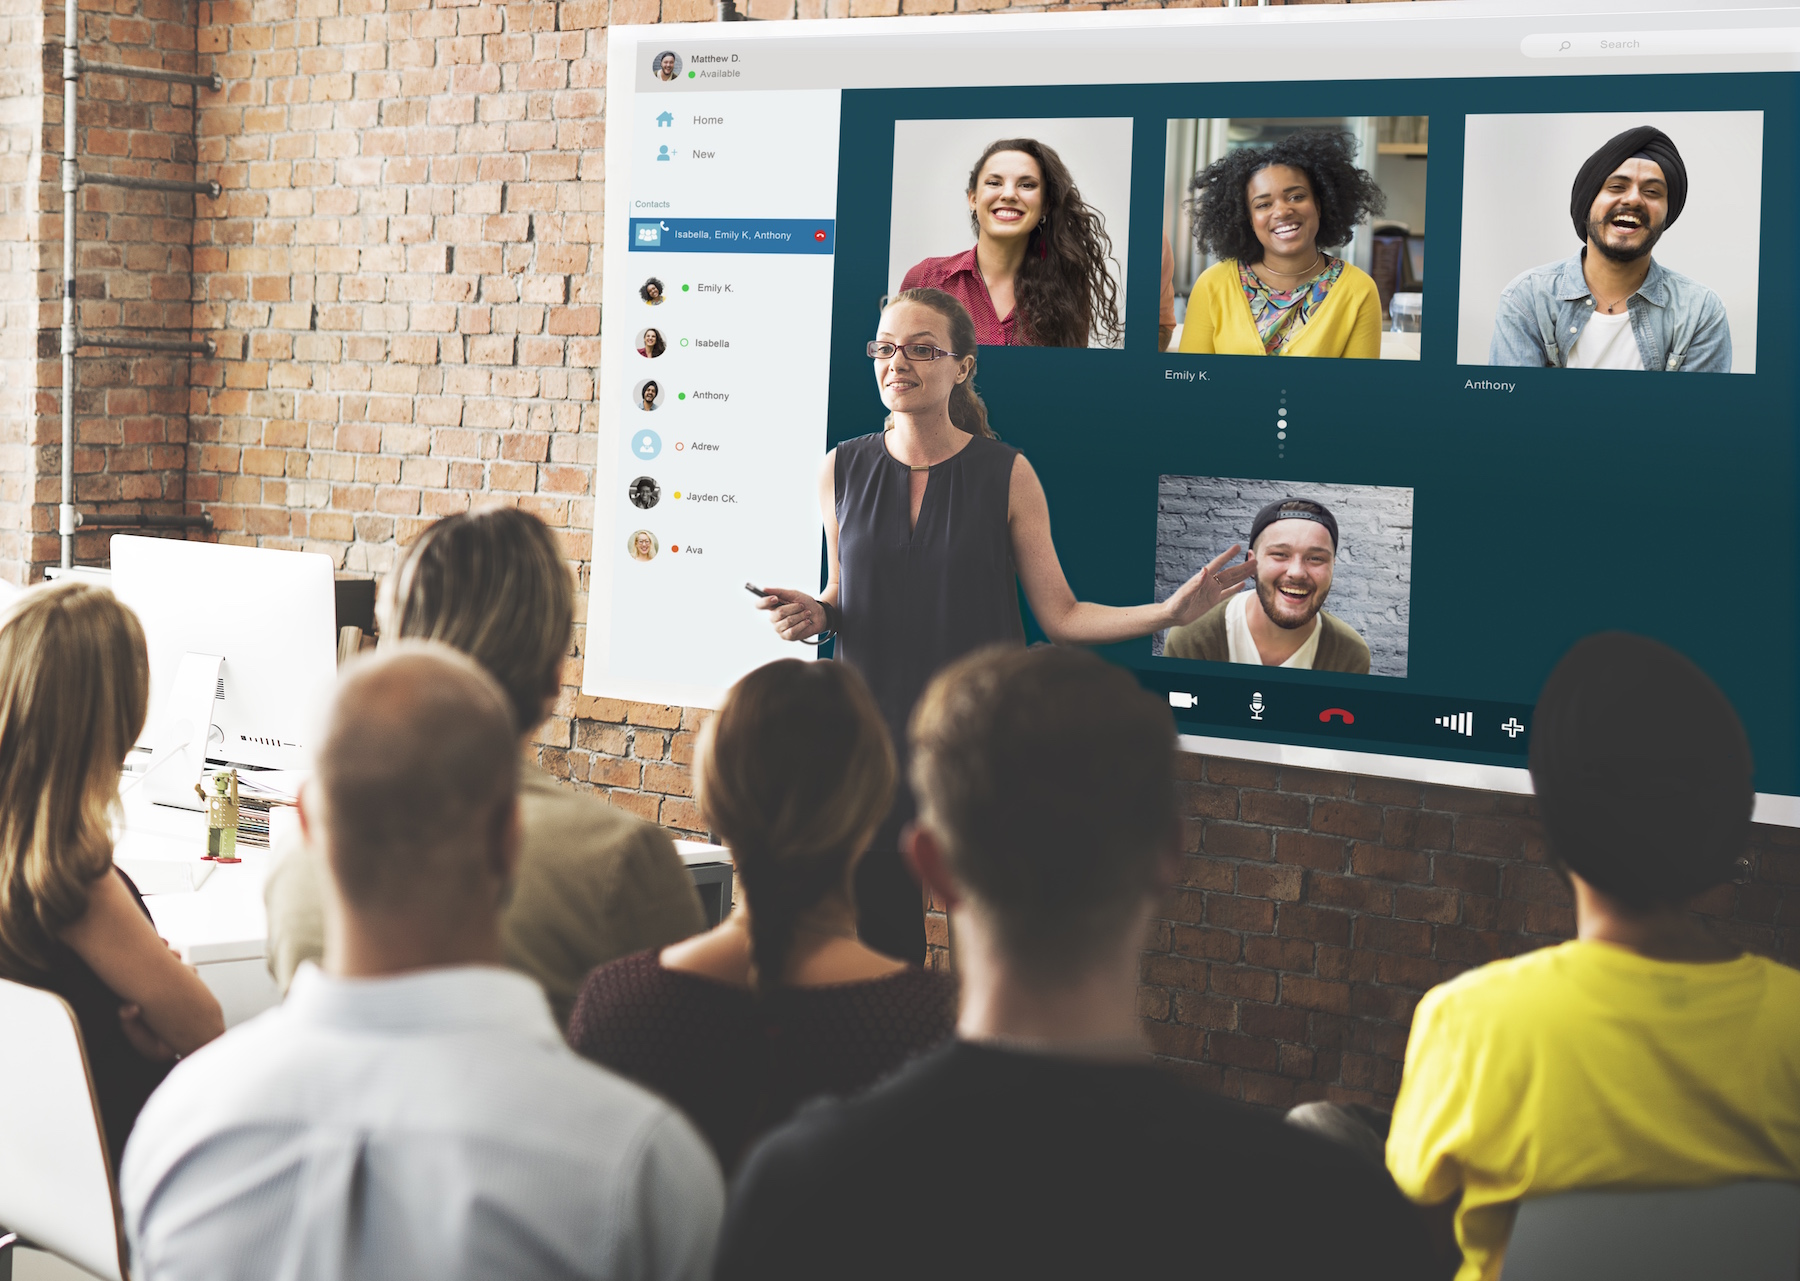 Company Video Chat